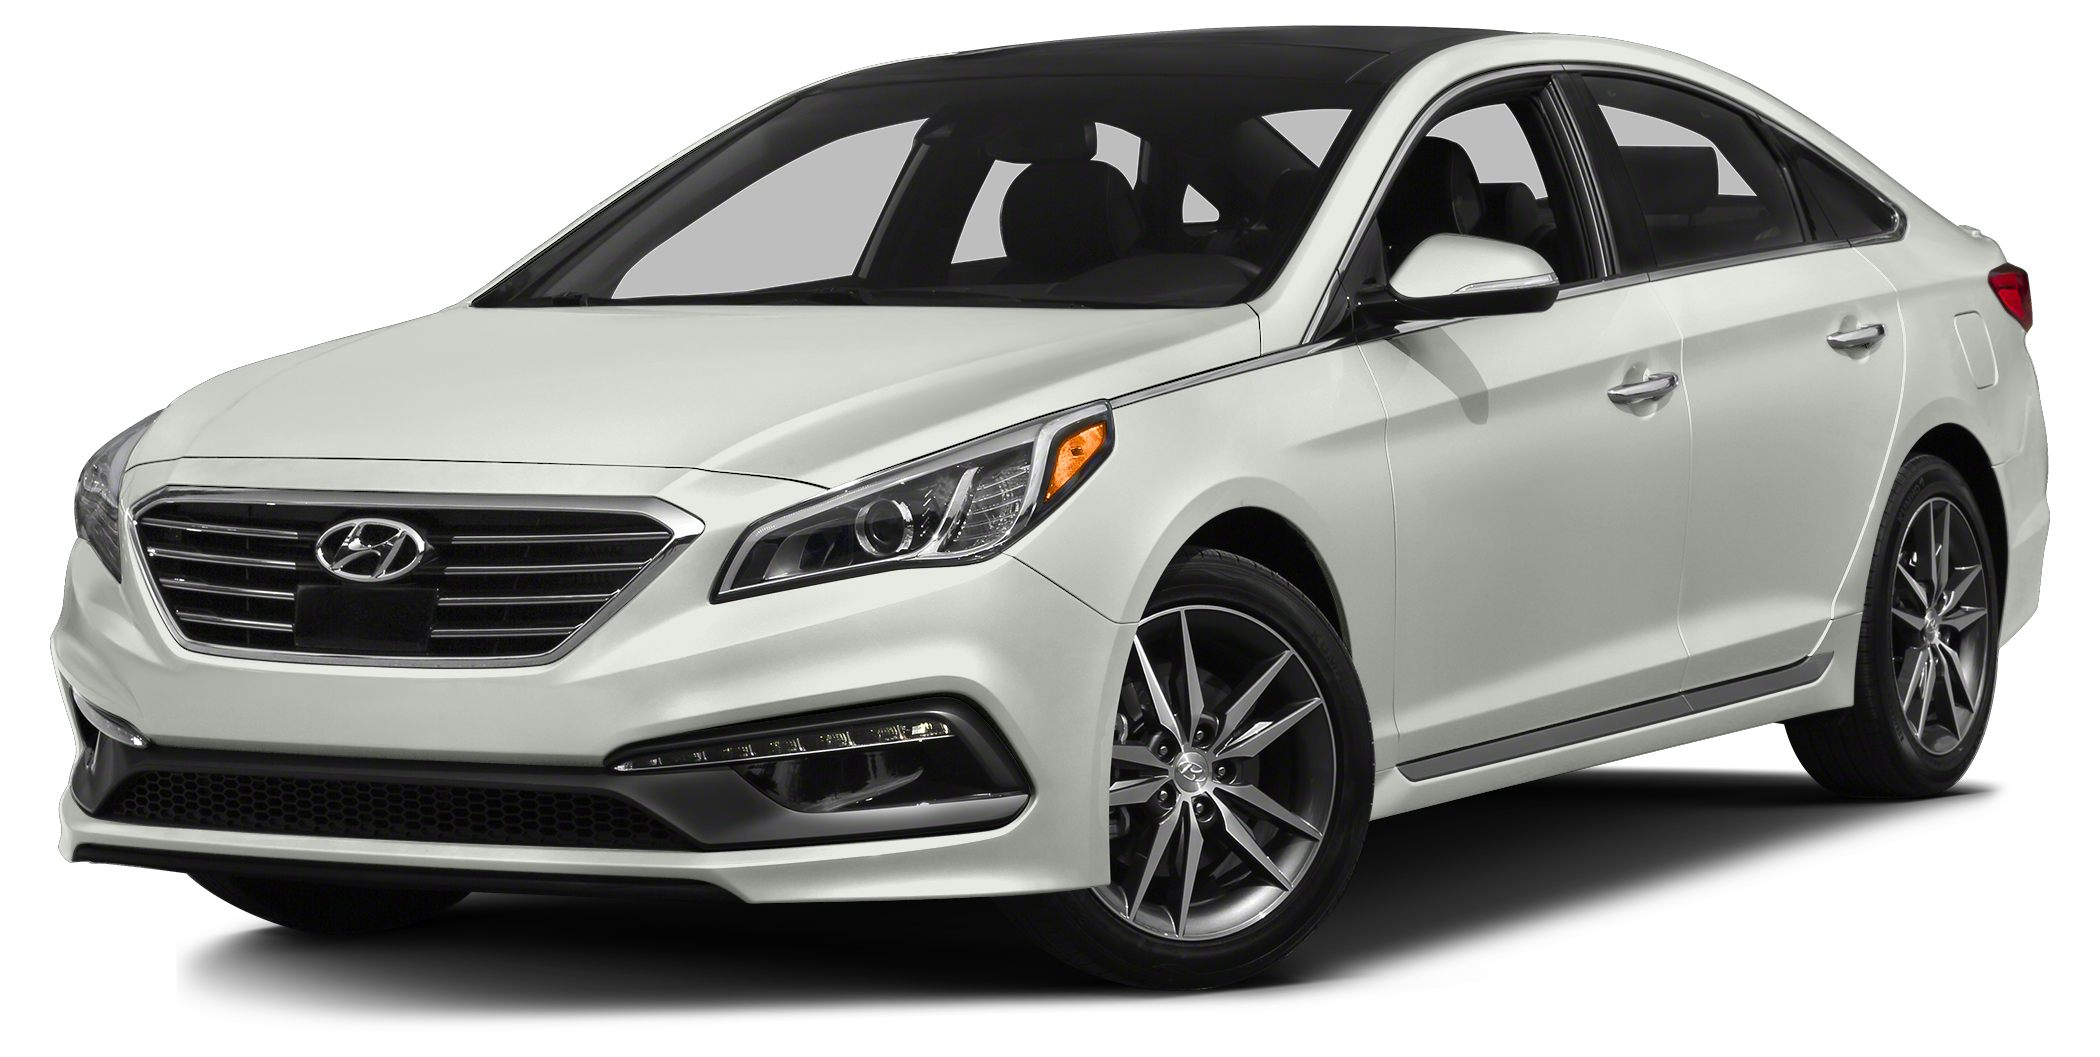 2015 Hyundai Sonata Sport 20T 2015 Hyundai Sonata Sport 20T in White and One Year Free Maintanen